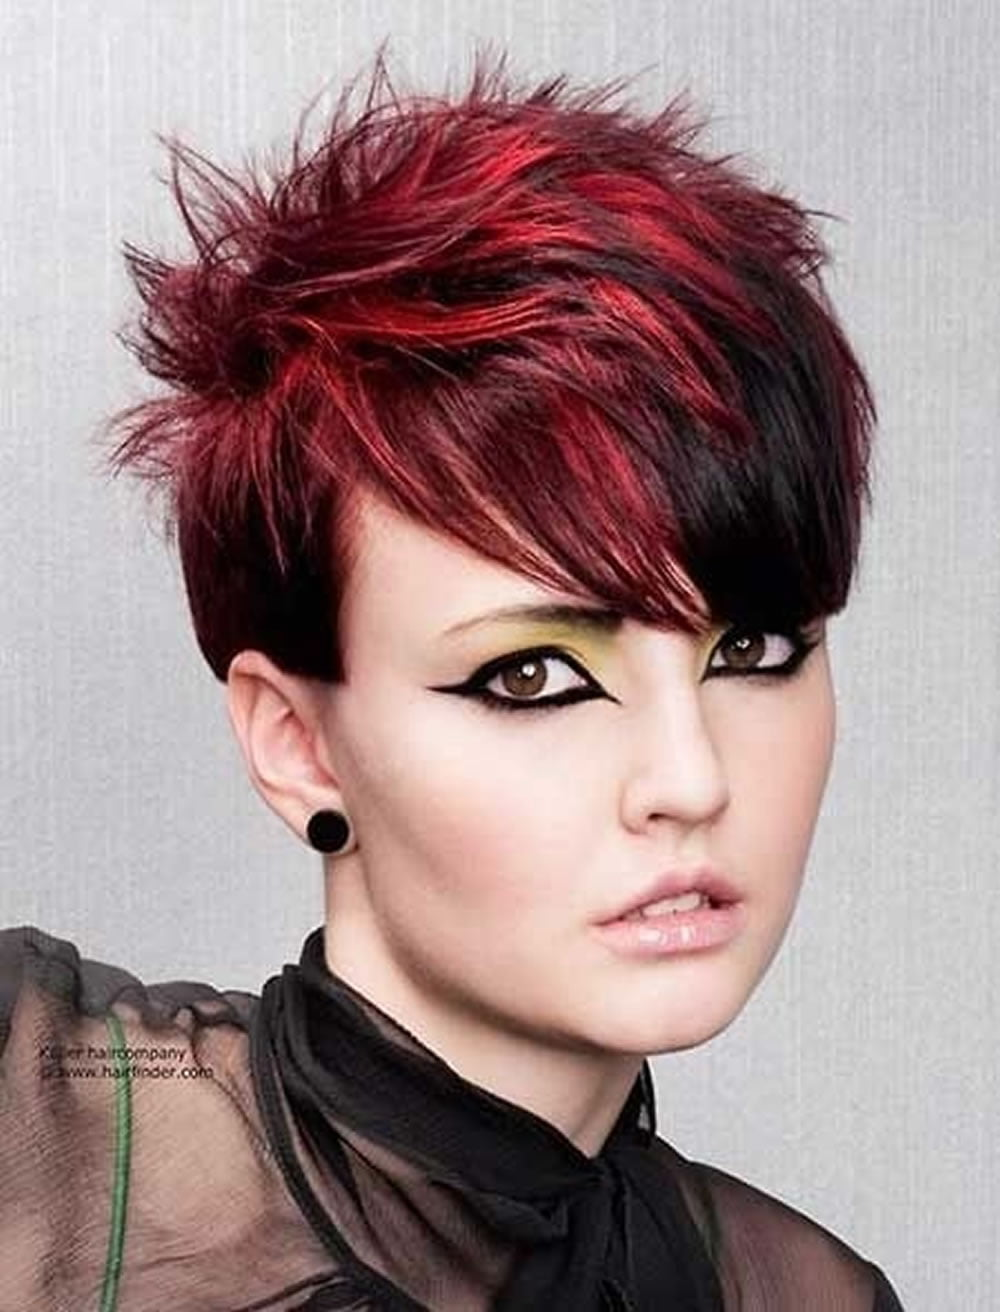 red hair color for short hairstyles 27 cool haircut tutorial for 2017 2018 page 3 hairstyles. Black Bedroom Furniture Sets. Home Design Ideas